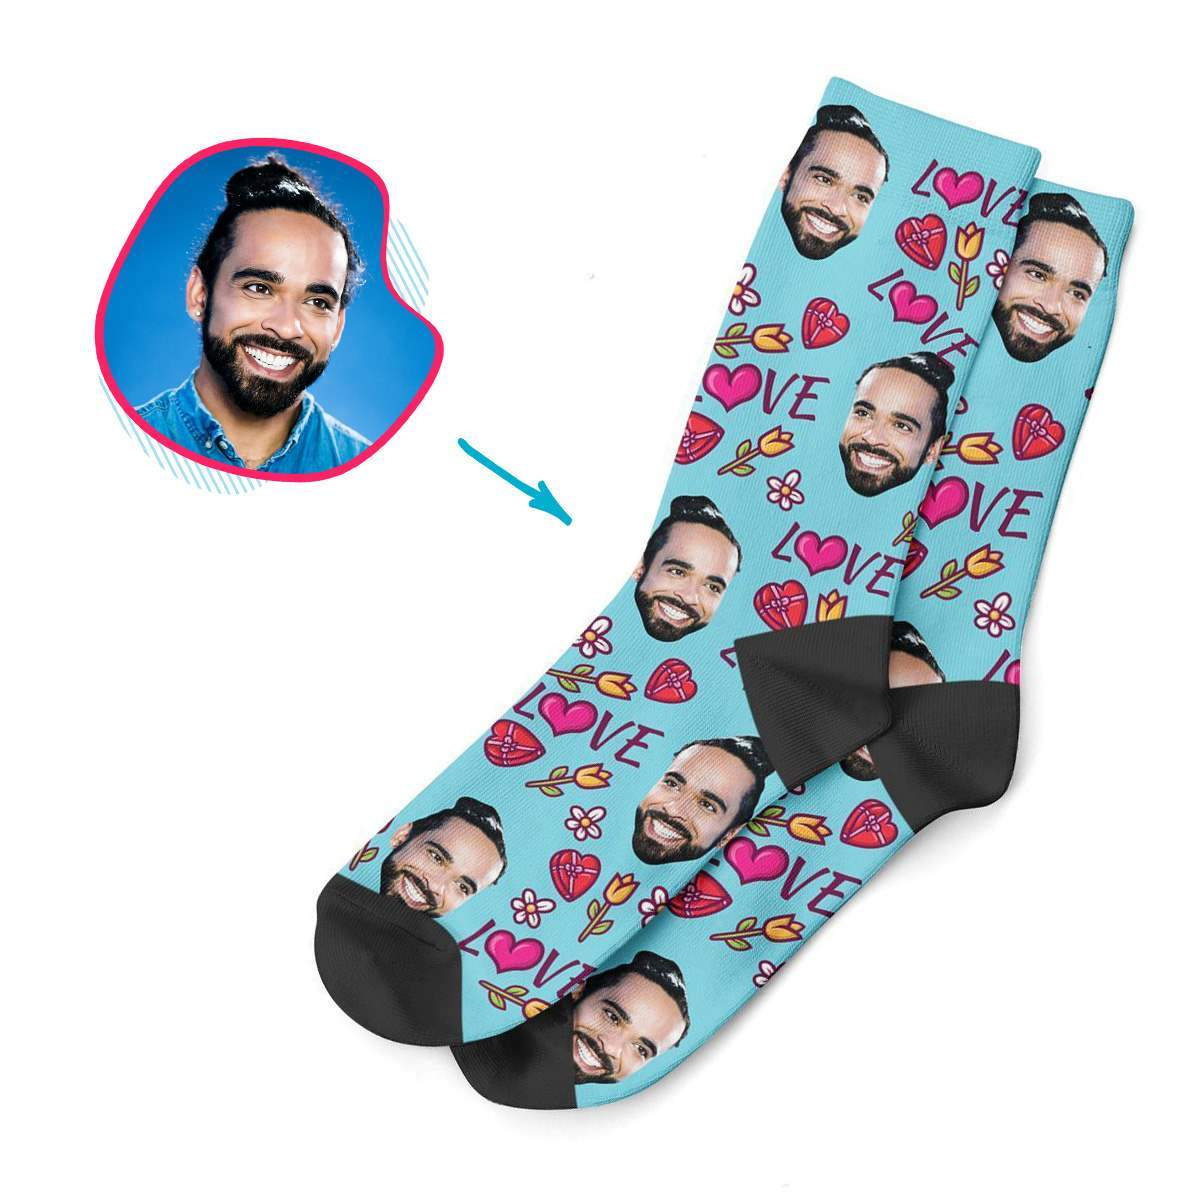 blue Hearts and Flowers socks personalized with photo of face printed on them